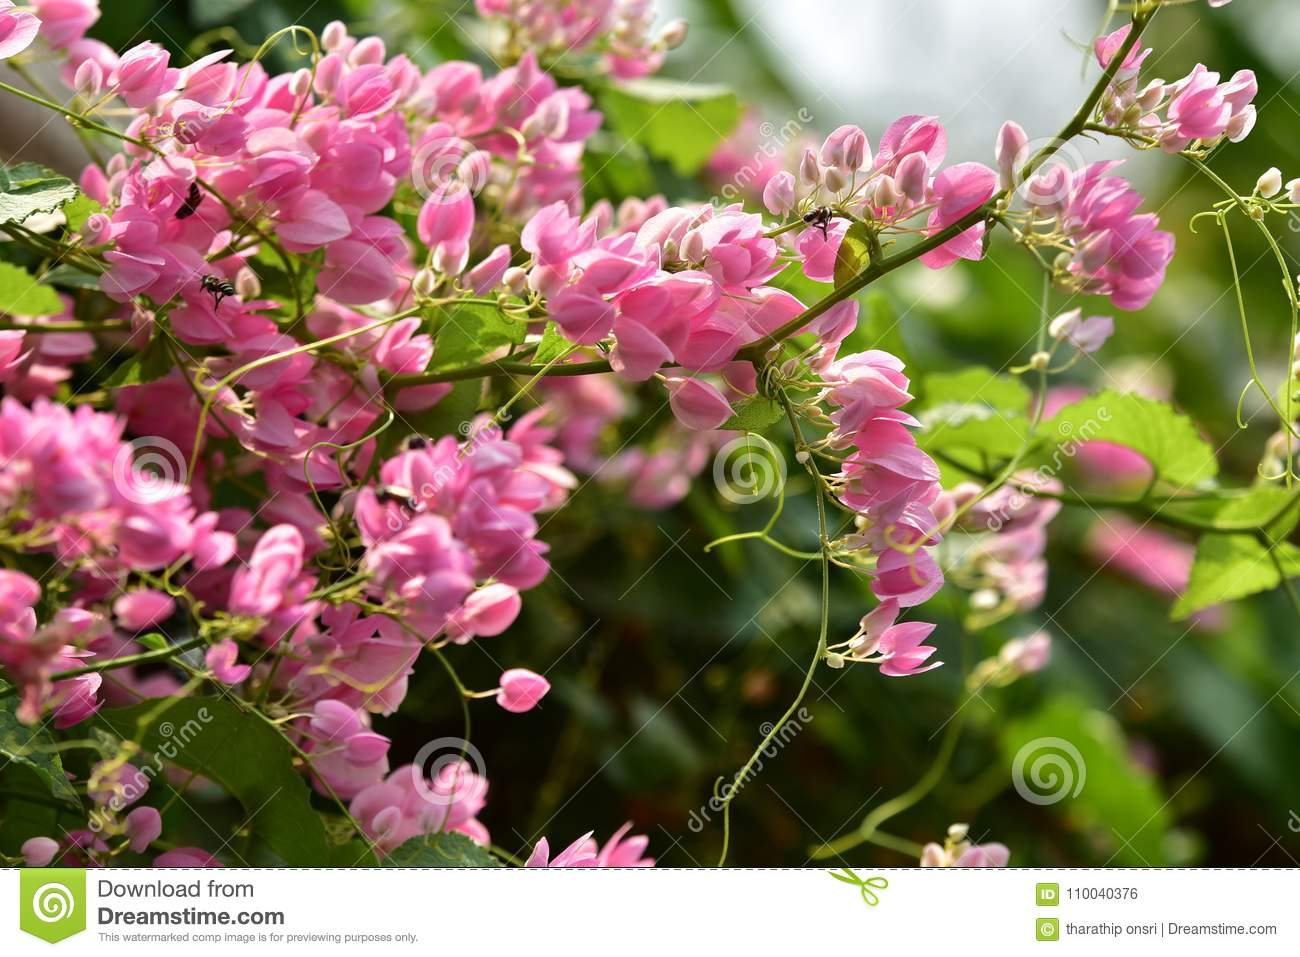 L pink flower blossom on its tree in springtime stock photo image close up of small pink flower blossom on its tree in springtime pink flower petal pink flowersazalea flowers white flowers natural flowers azalea mightylinksfo